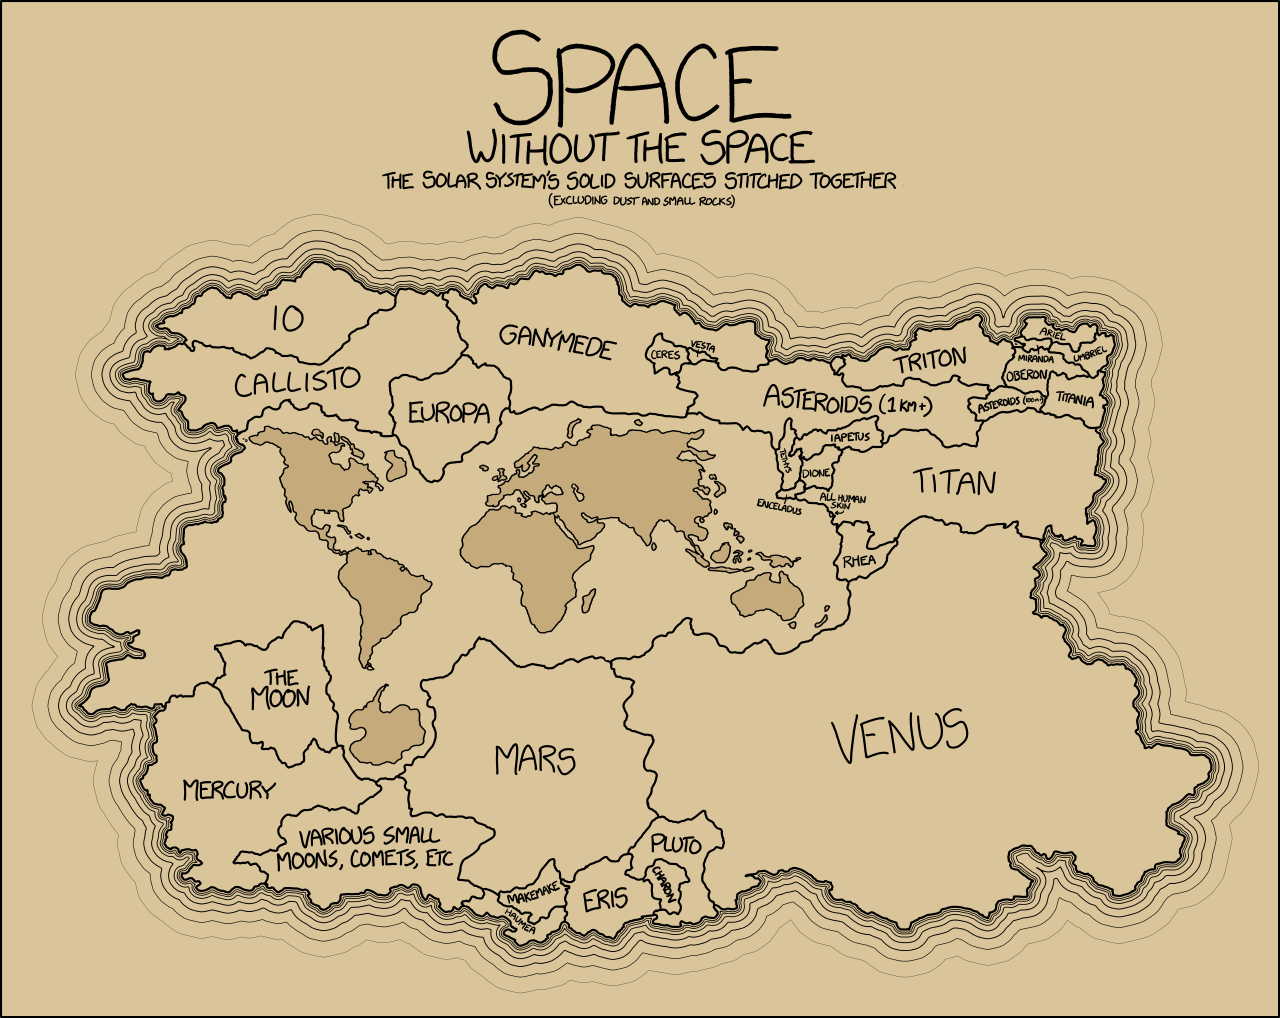 Space without the space: the Solar system's solid surfaces stitched together